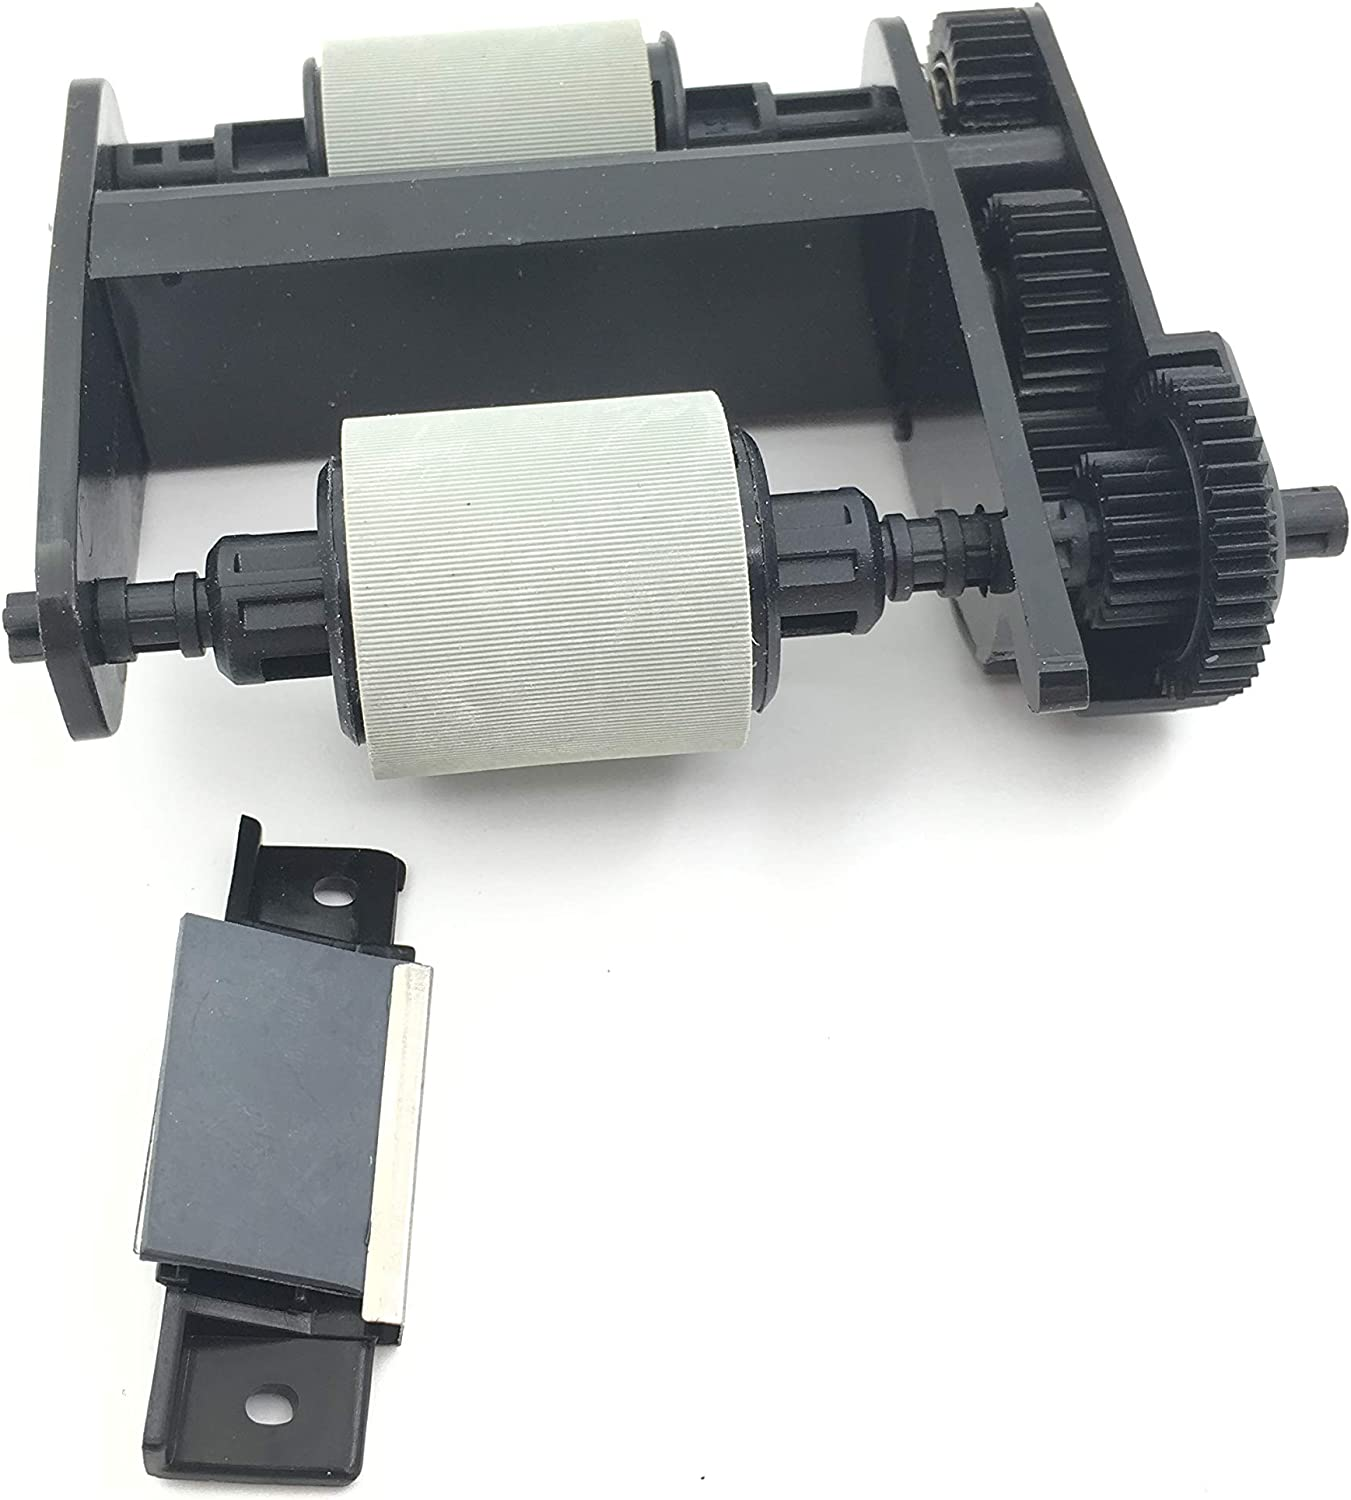 OEM COMPATIBLE** HP LJ 3055 ADF Roller Kit **NEW